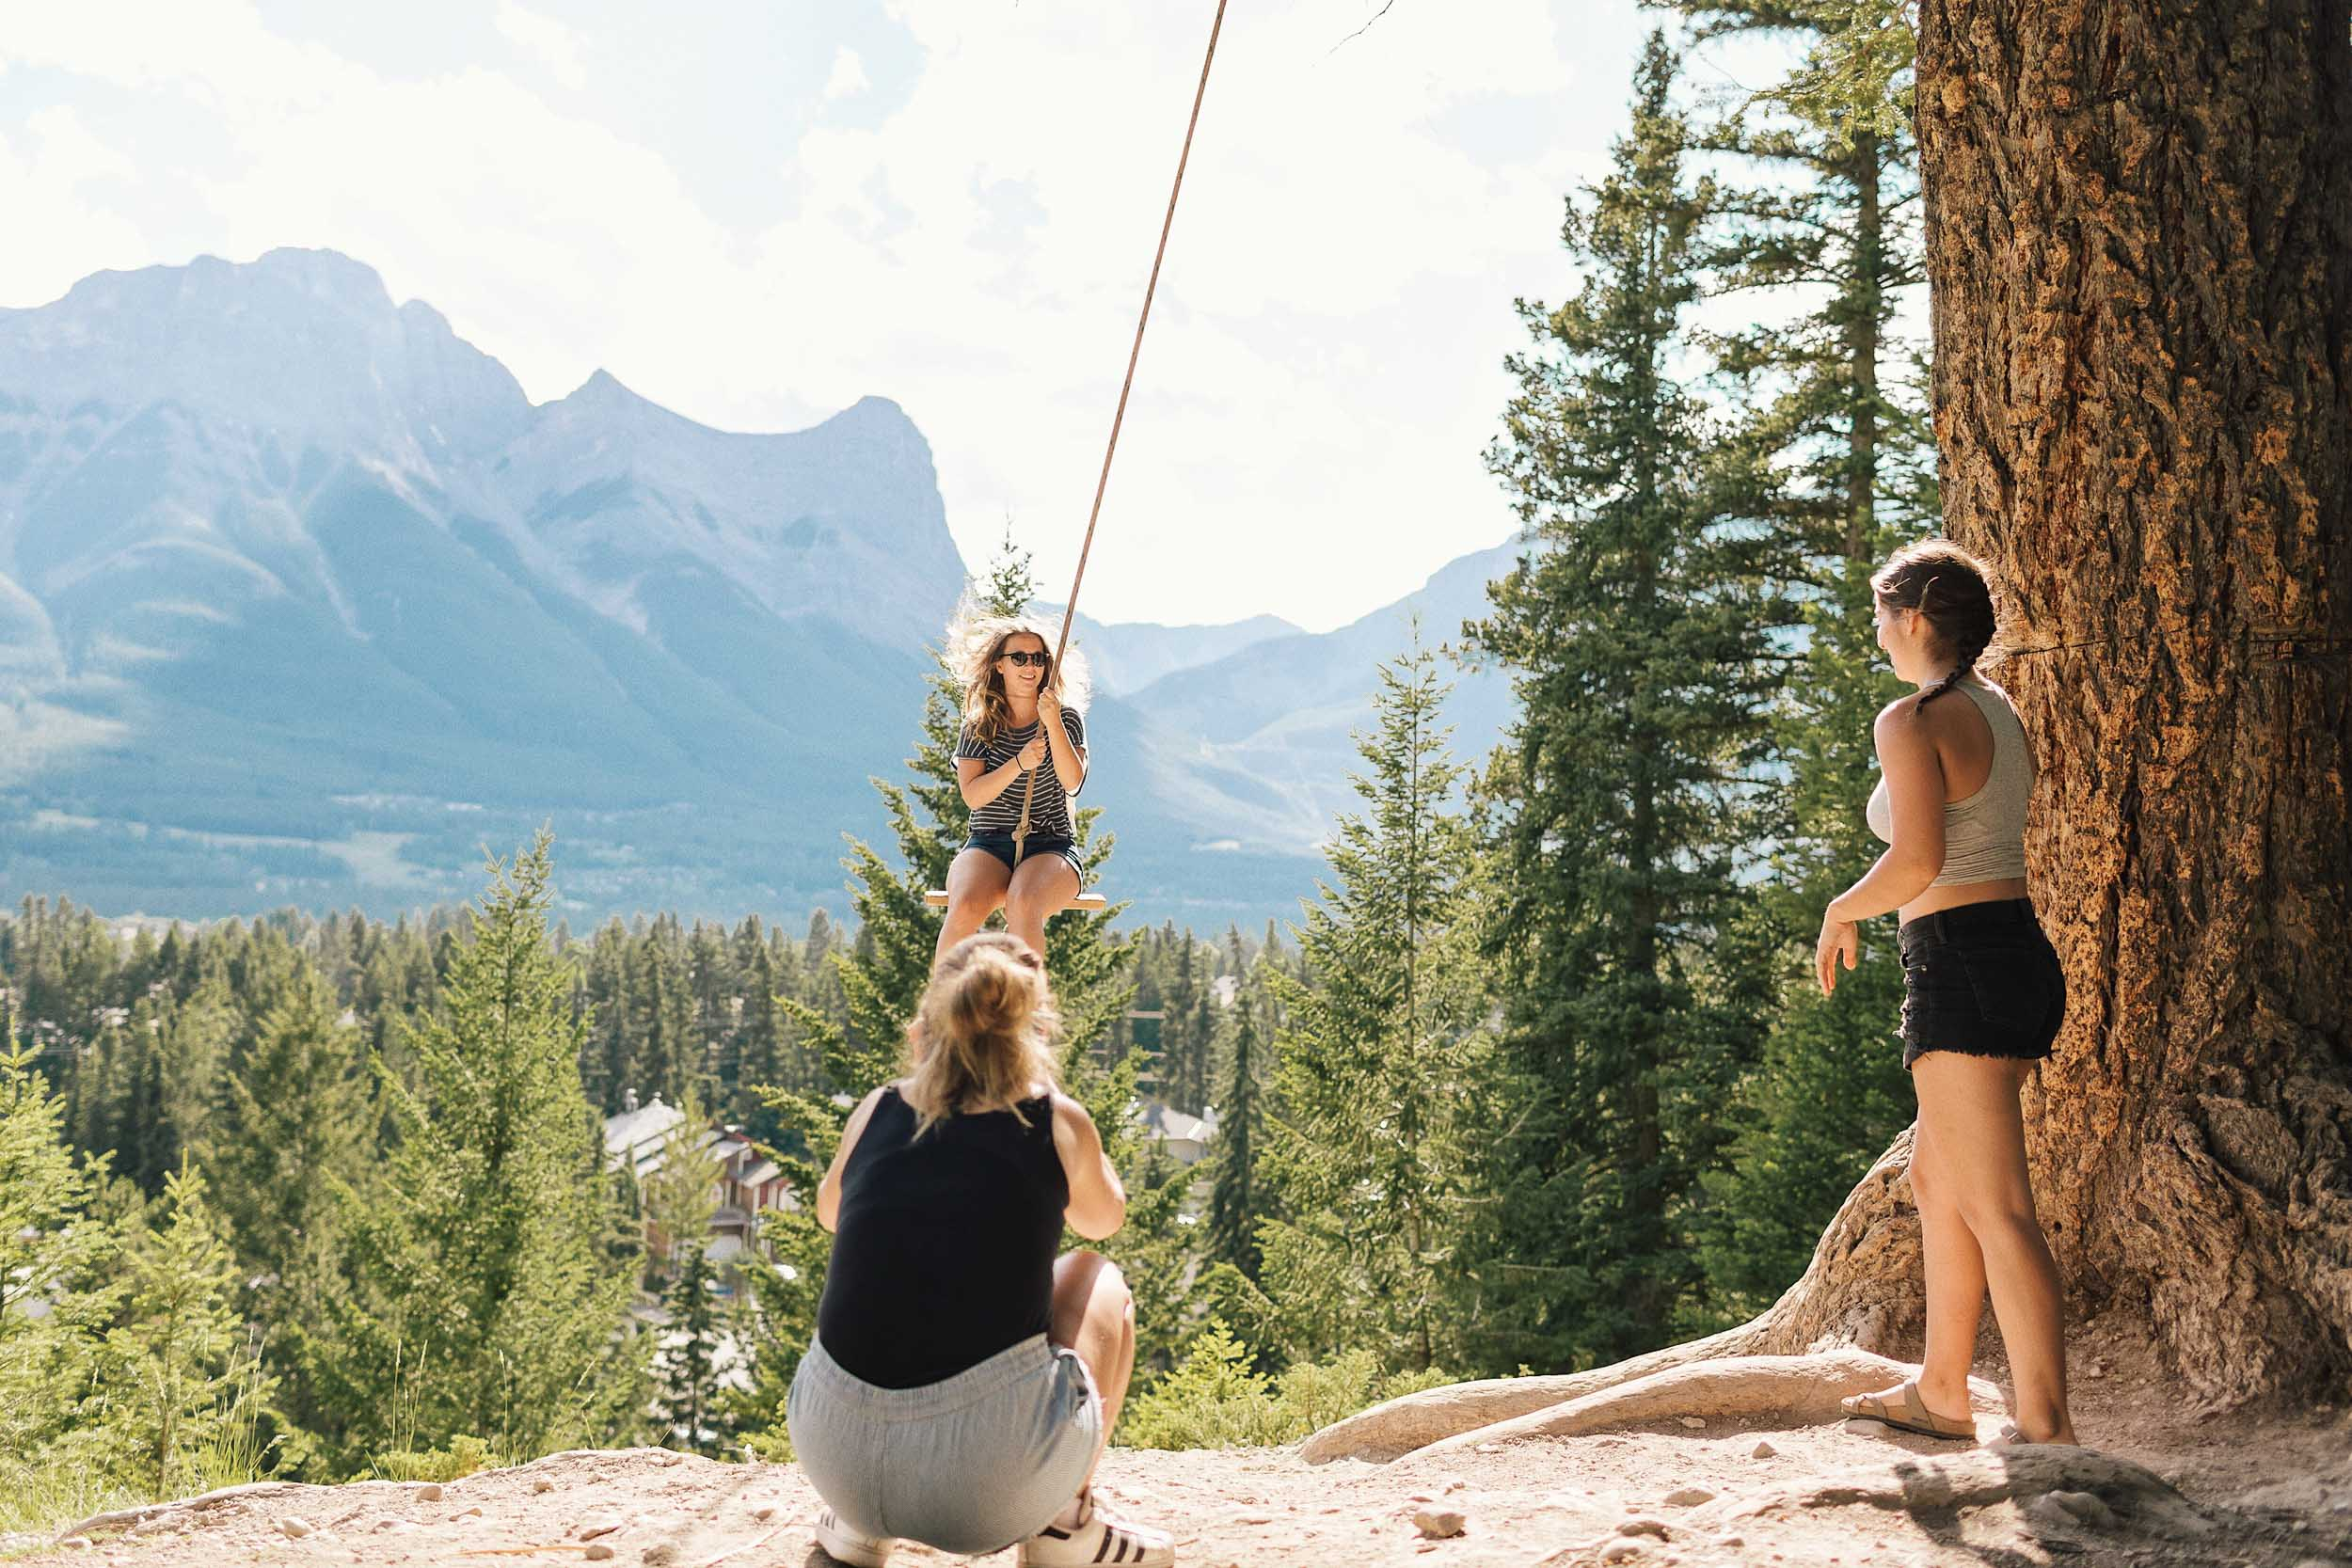 When visiting the rope swing in Canmore, bring two friends if possible!